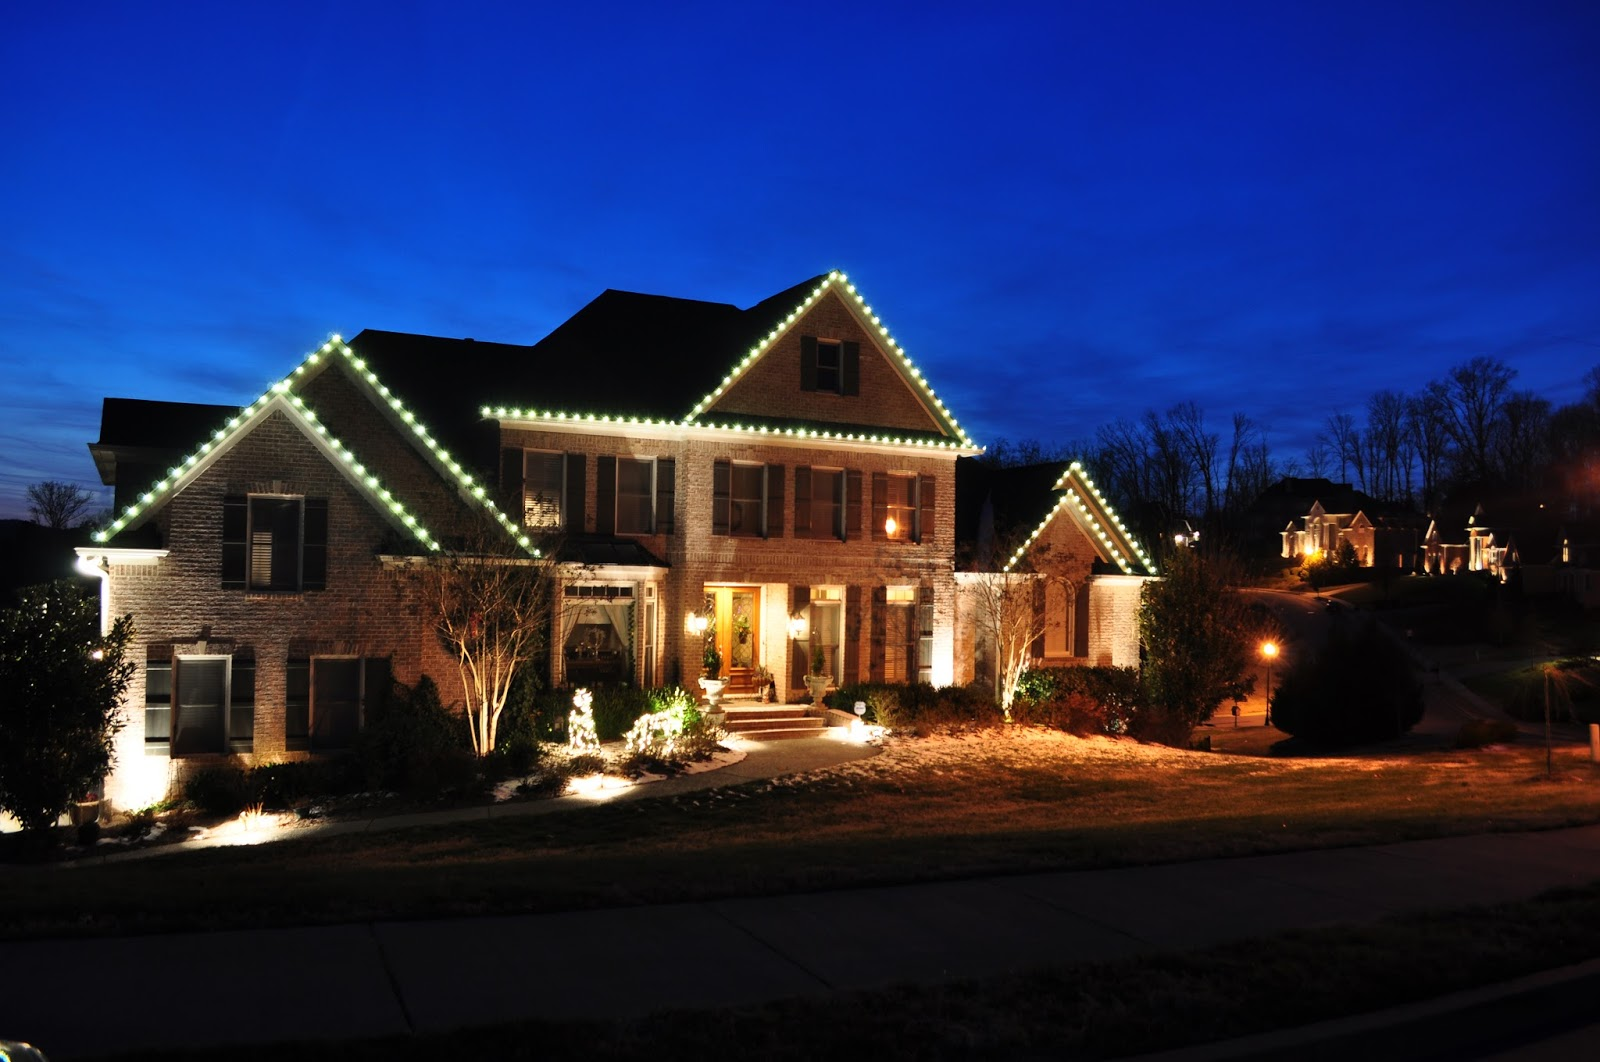 Outdoor Light Ideas Christmas Light N Shine Indoor Outdoor Led Christmas Lighting Ideas